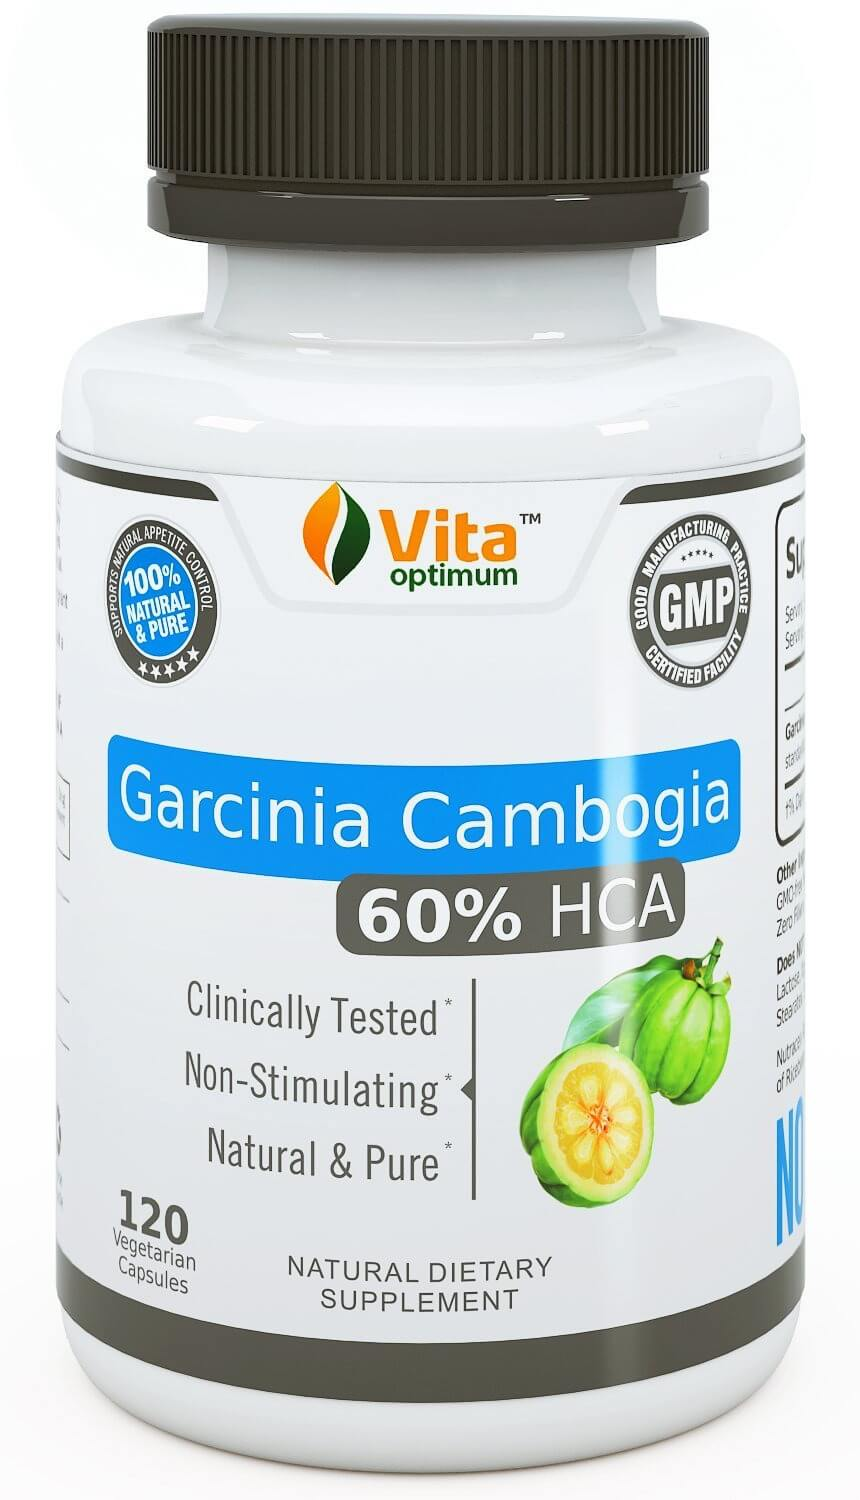 Garcinia Cambogia: Is It Right For You?